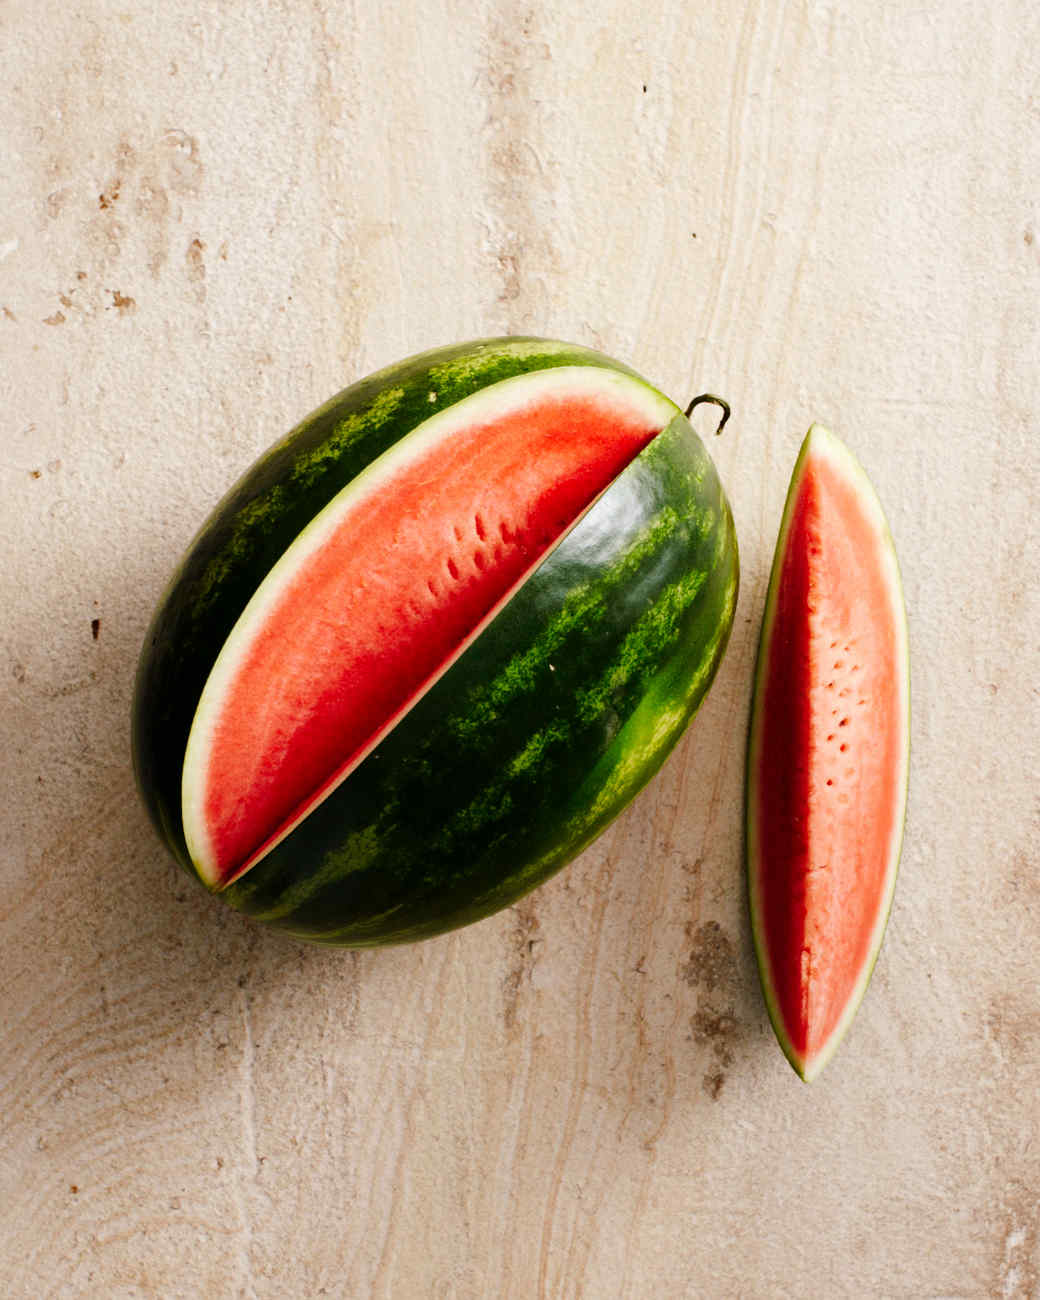 melon-ipad-watermelon-0161-ld110630-0614.jpg